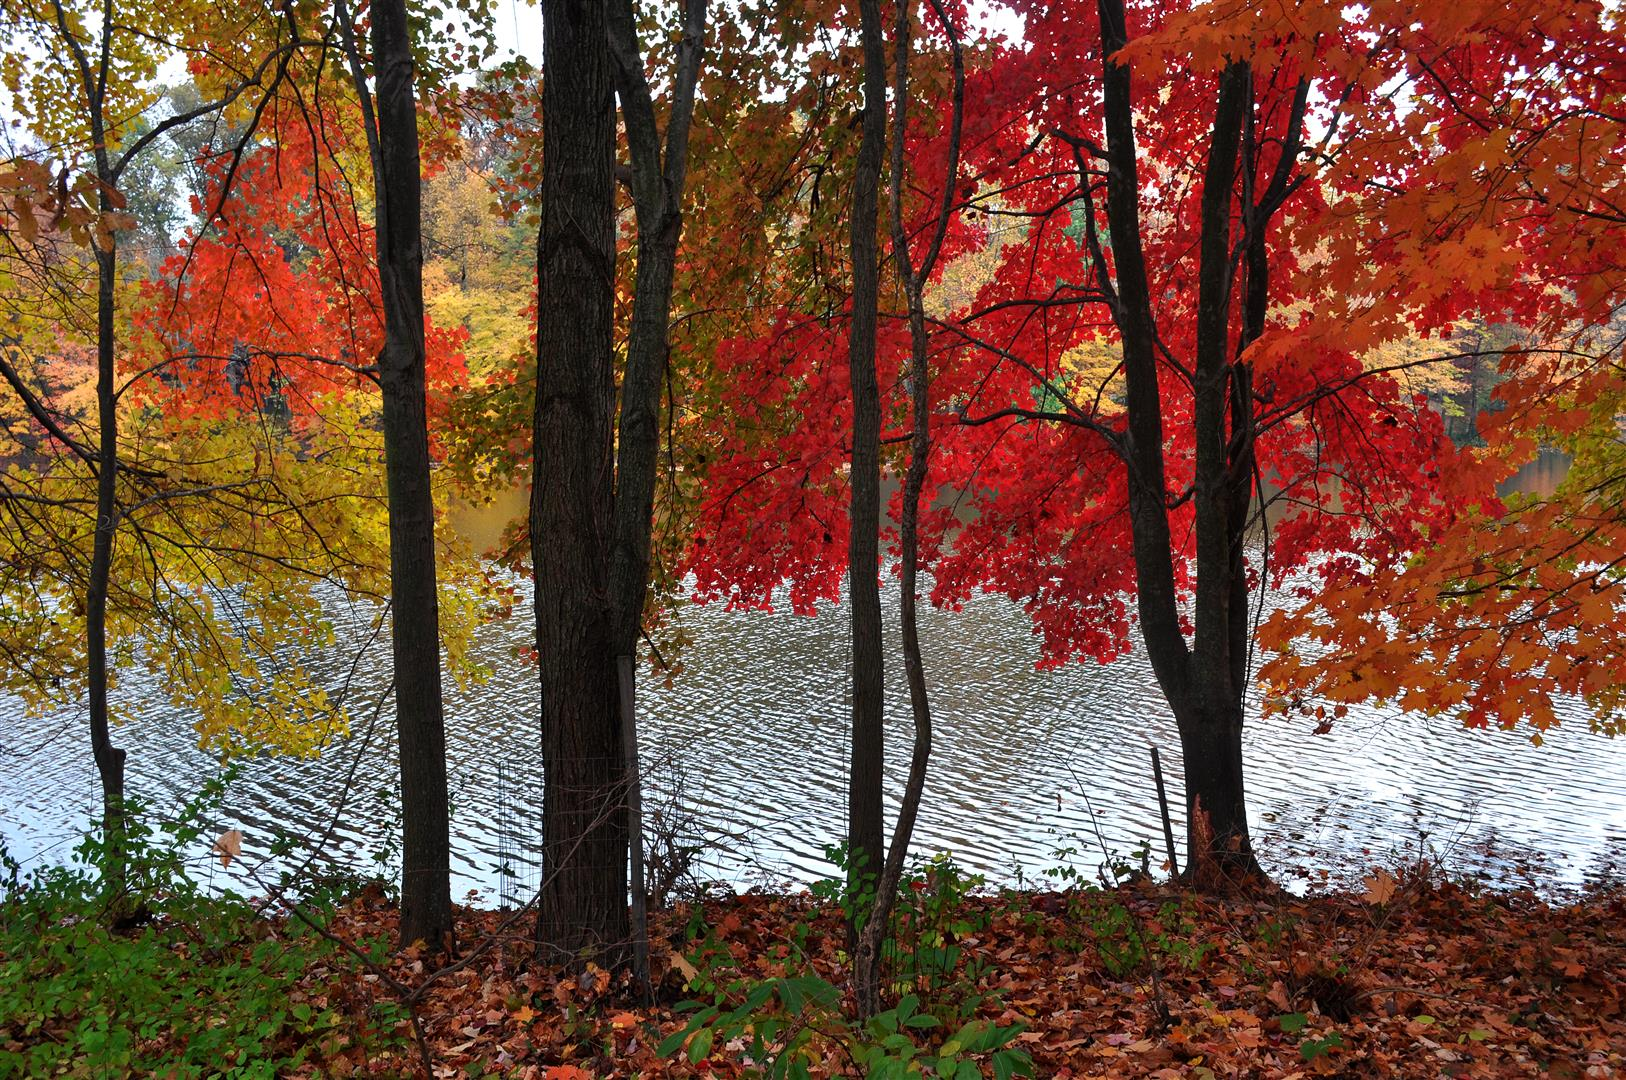 Lake Churchill, Autumn 2013